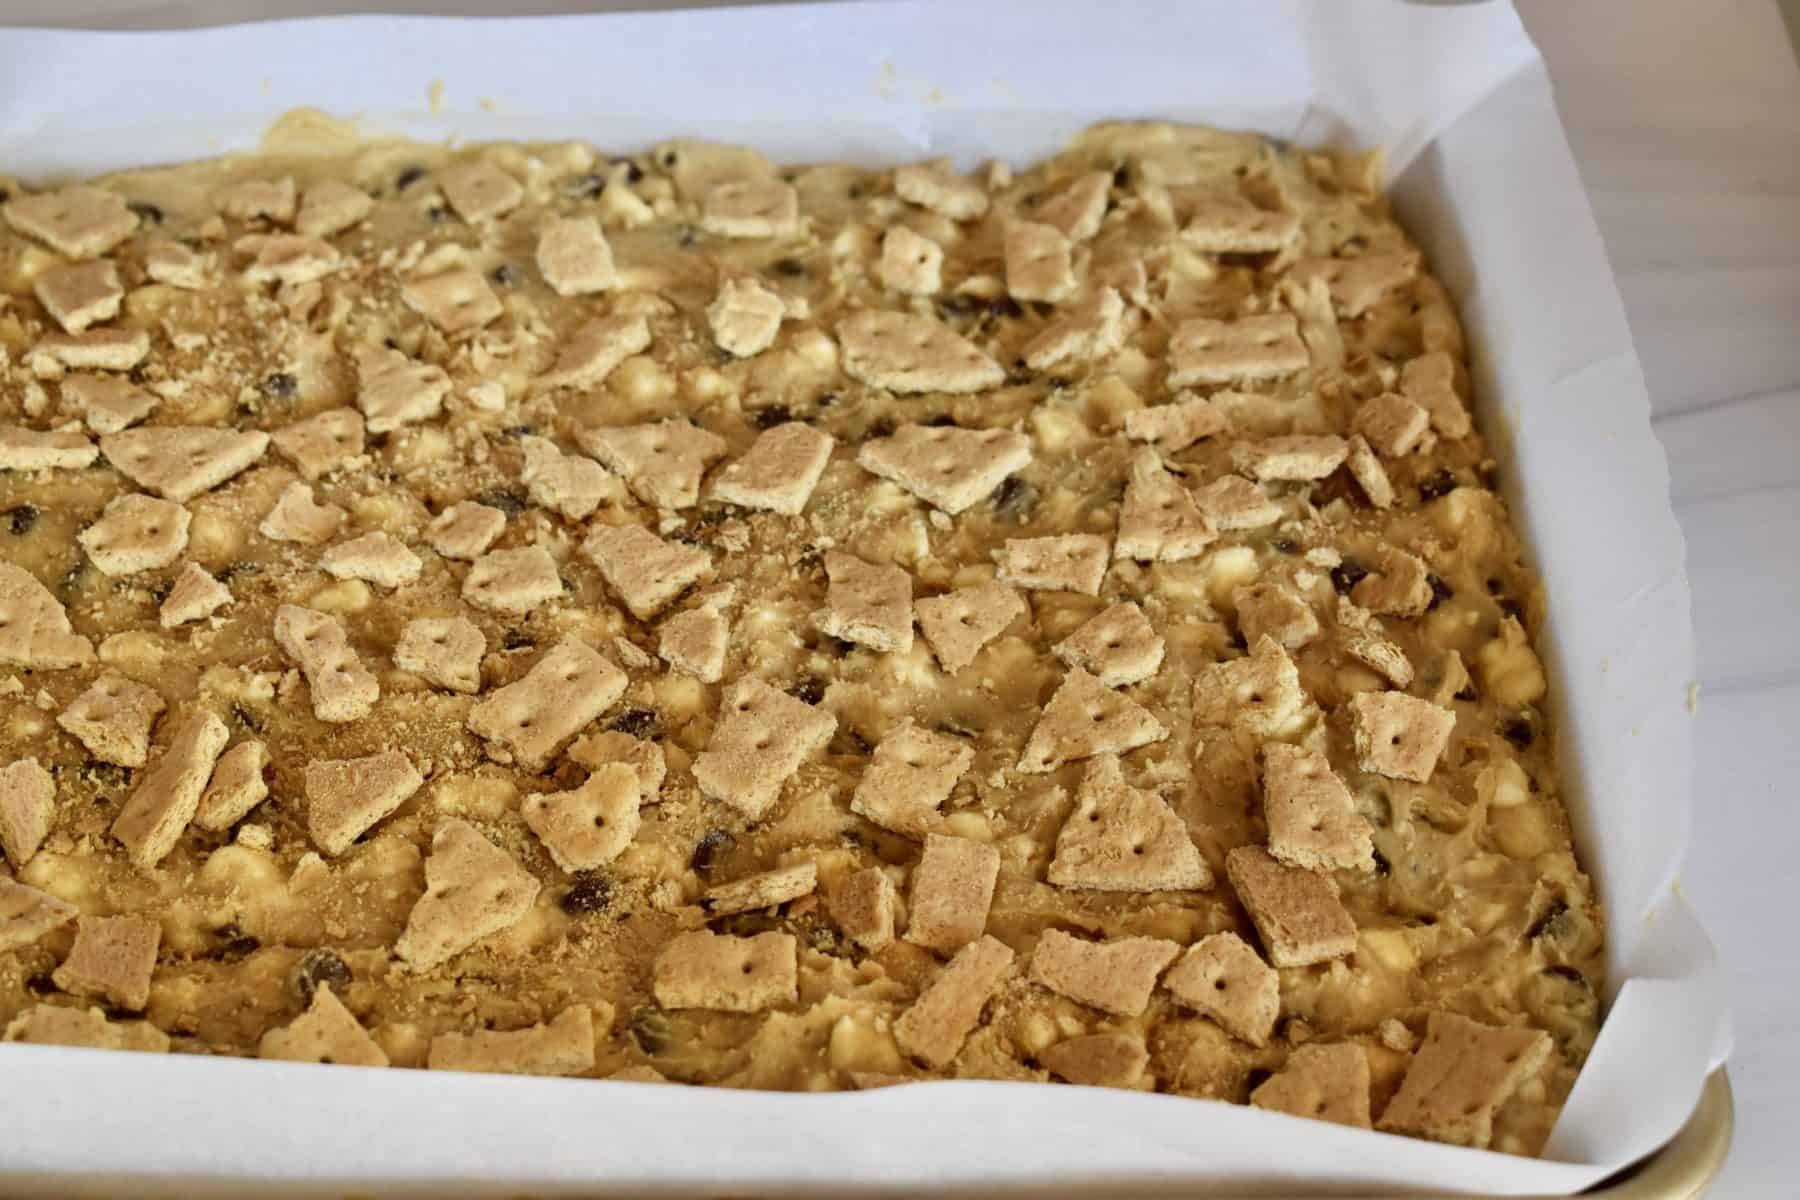 s'mores cookie batter spread on a baking sheet and topped with graham cracker.